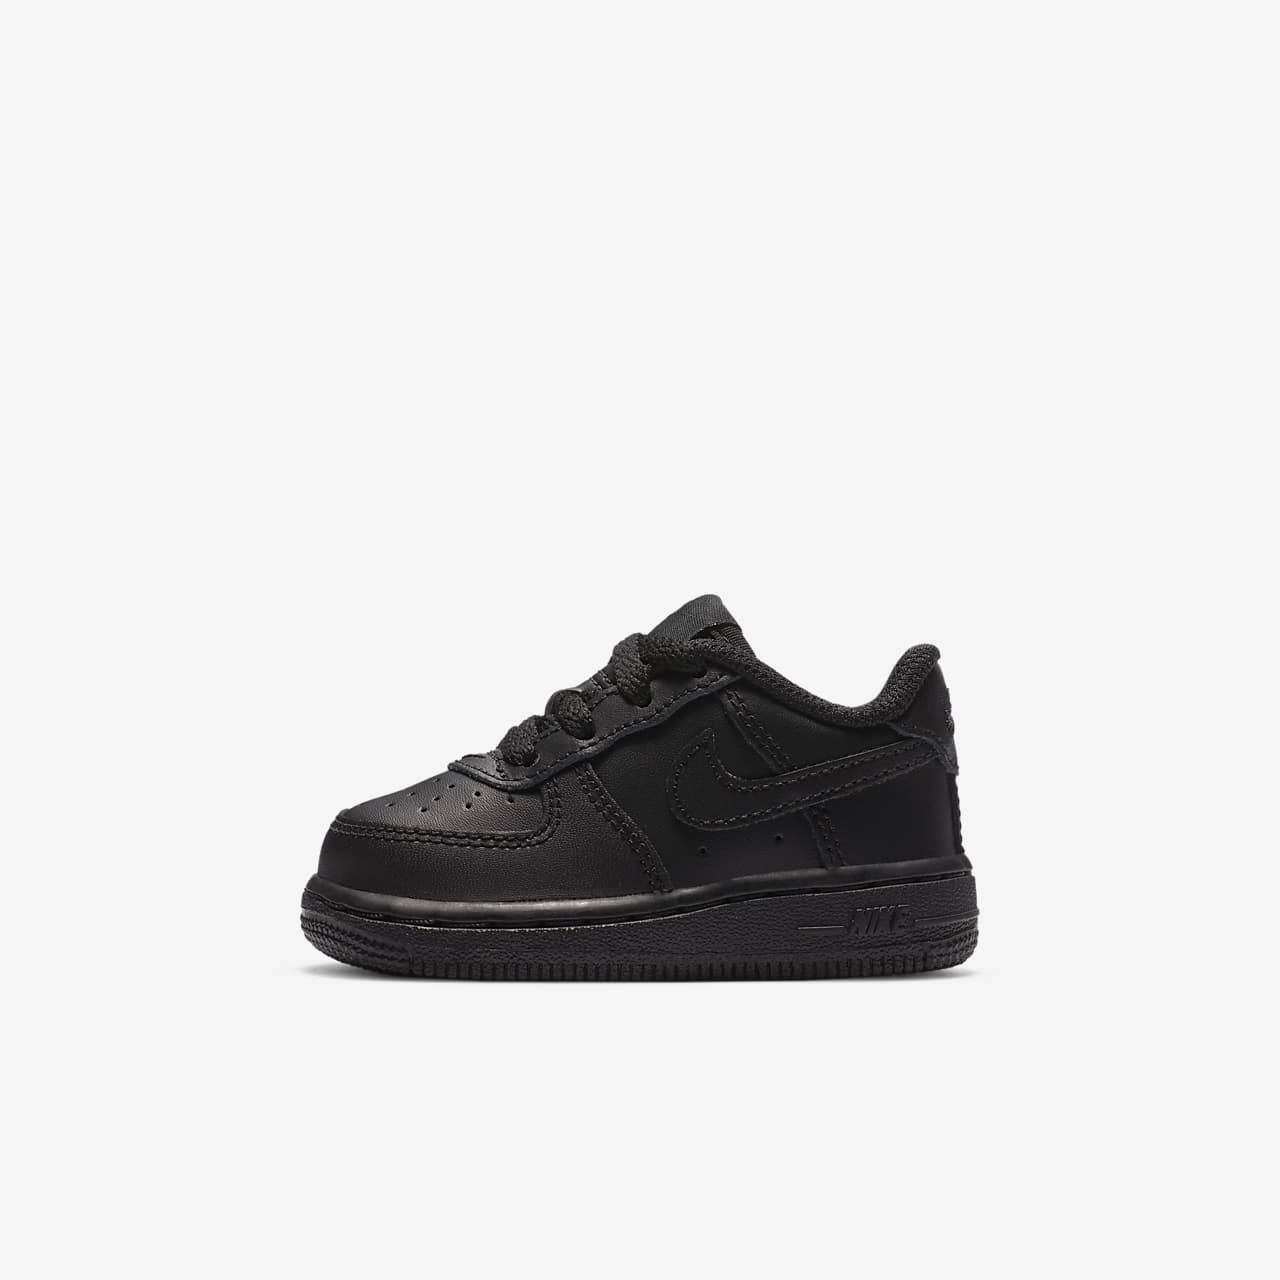 fad2df77a02db Nike Air Force 1 06 Infant/Toddler Shoe. Nike.com